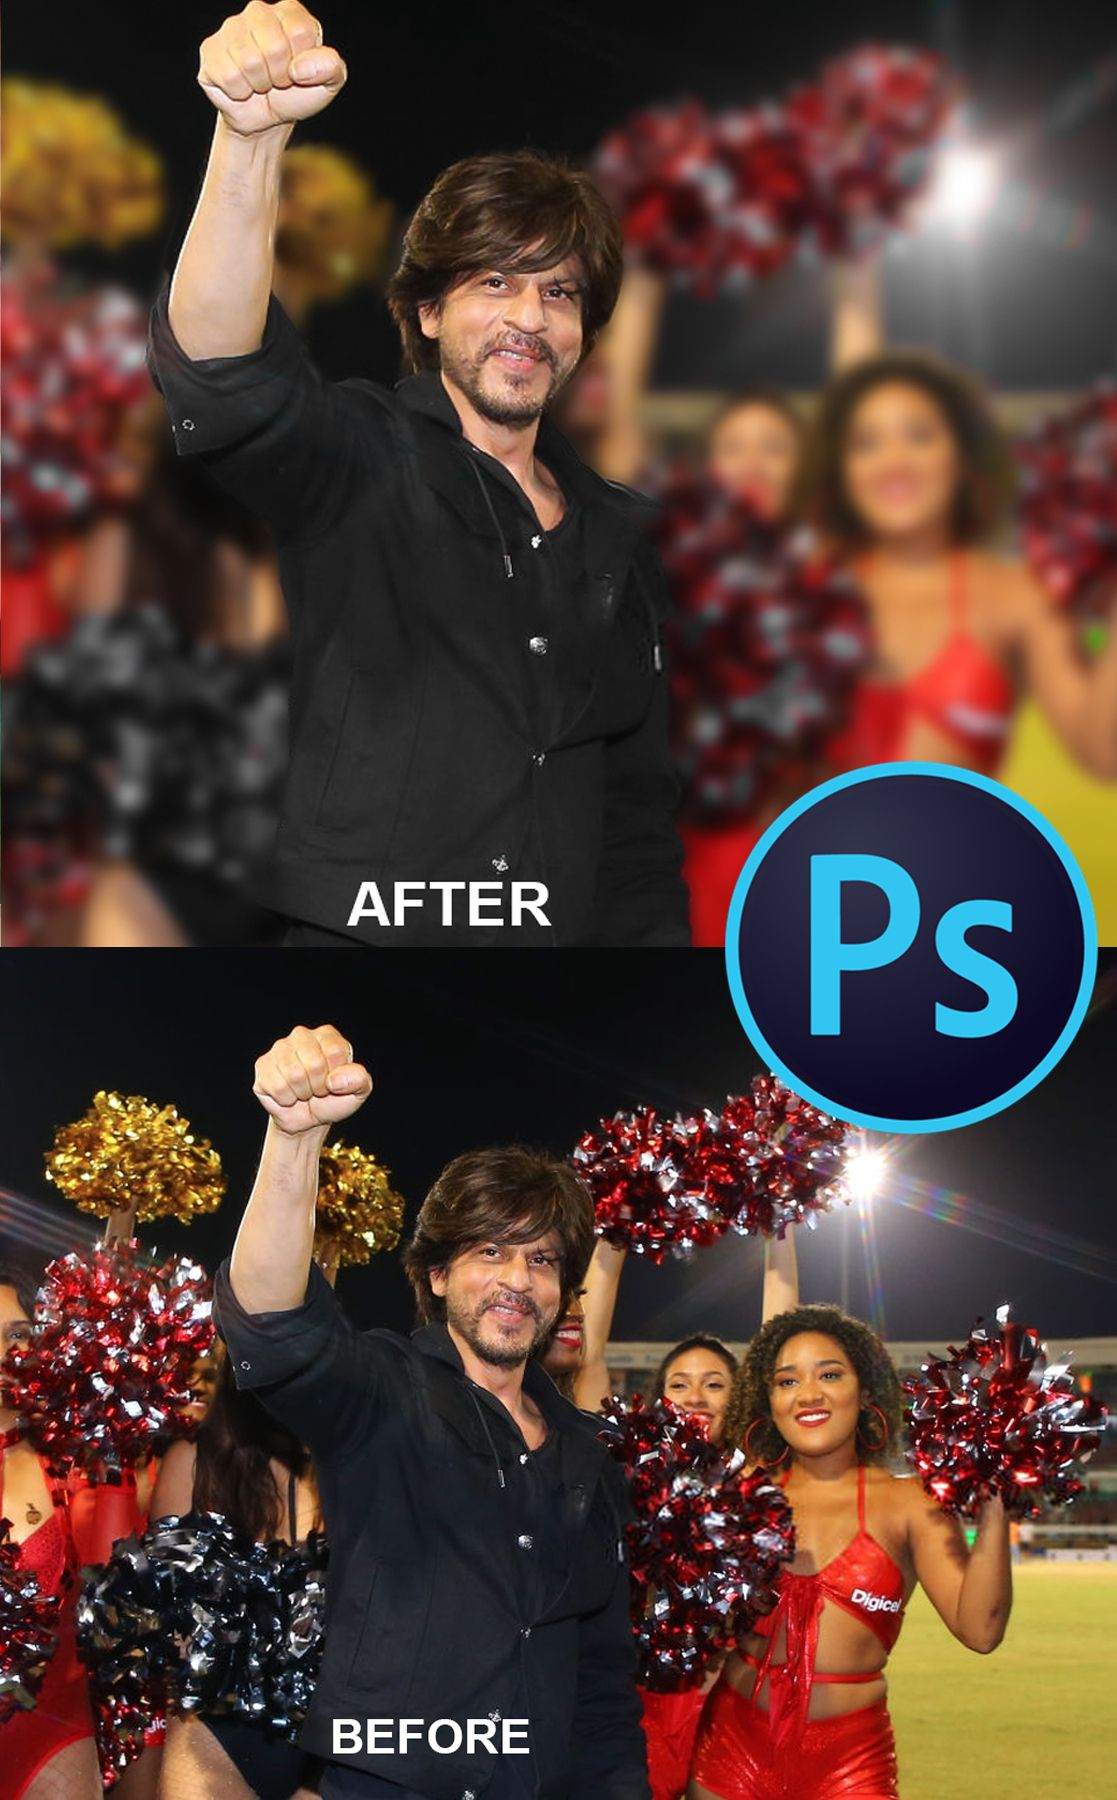 Cc editing how to blur photo background in